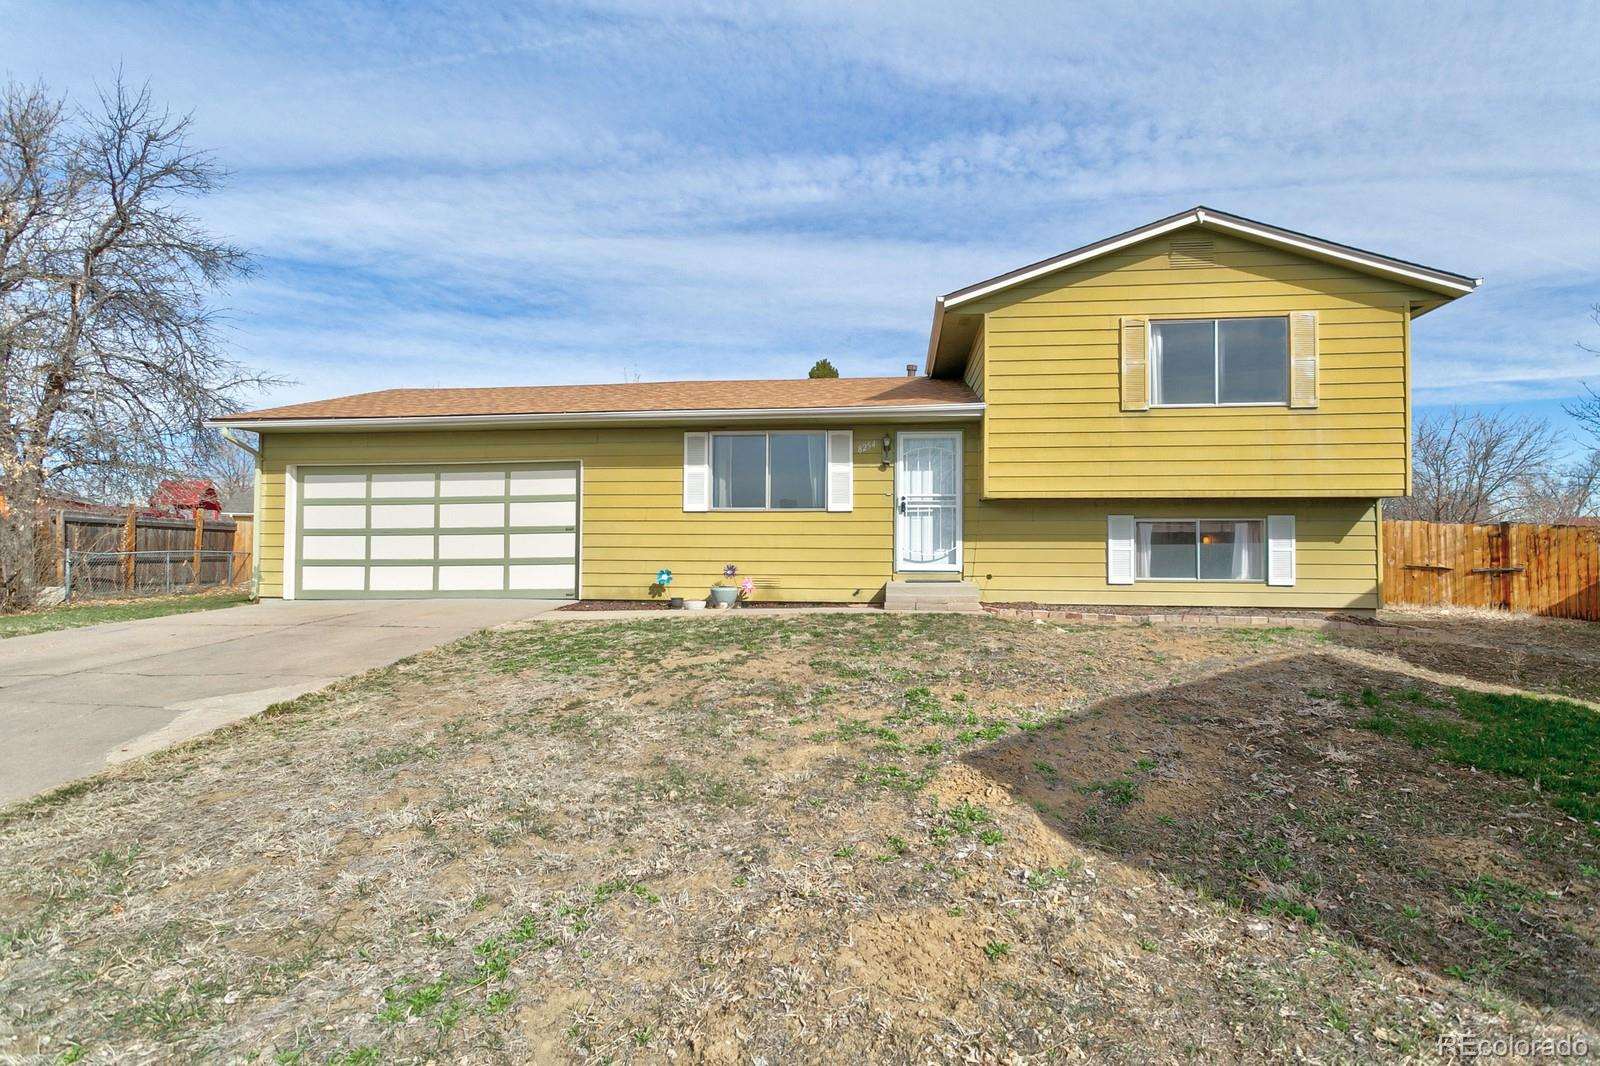 MLS# 8938465 - 8254 Ladean Street, Thornton, CO 80229